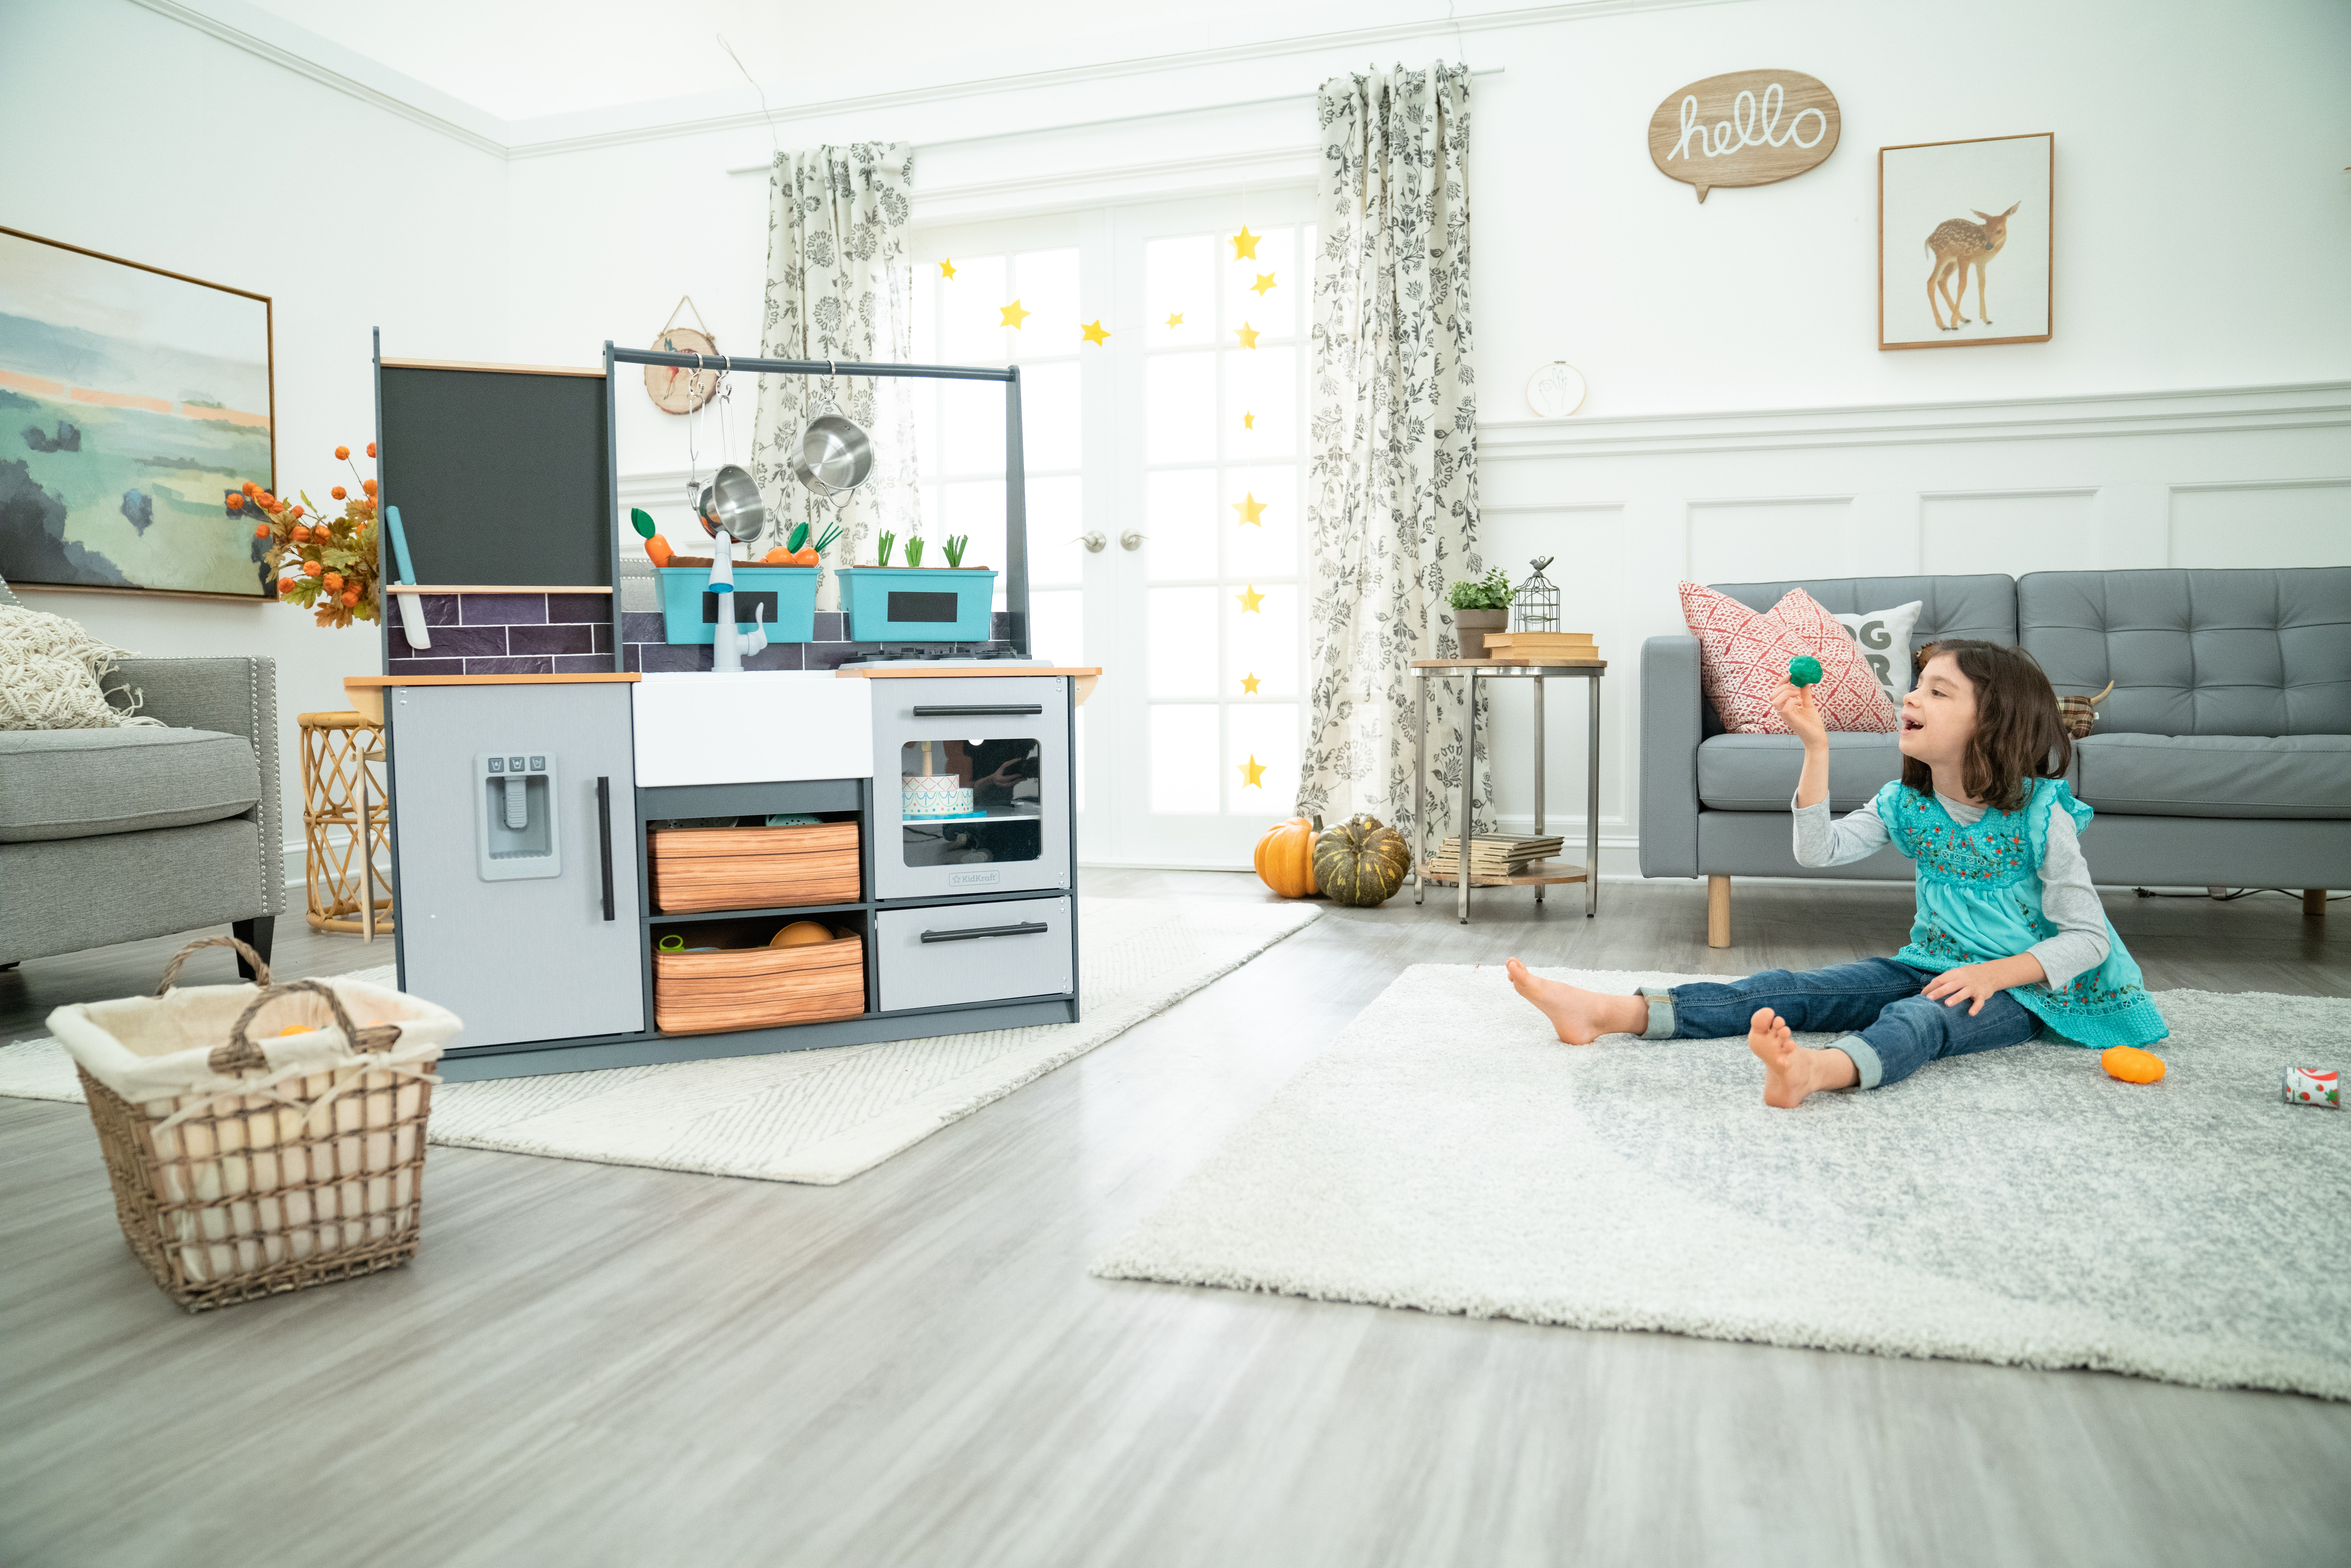 Girl playing with play kitchen accessories